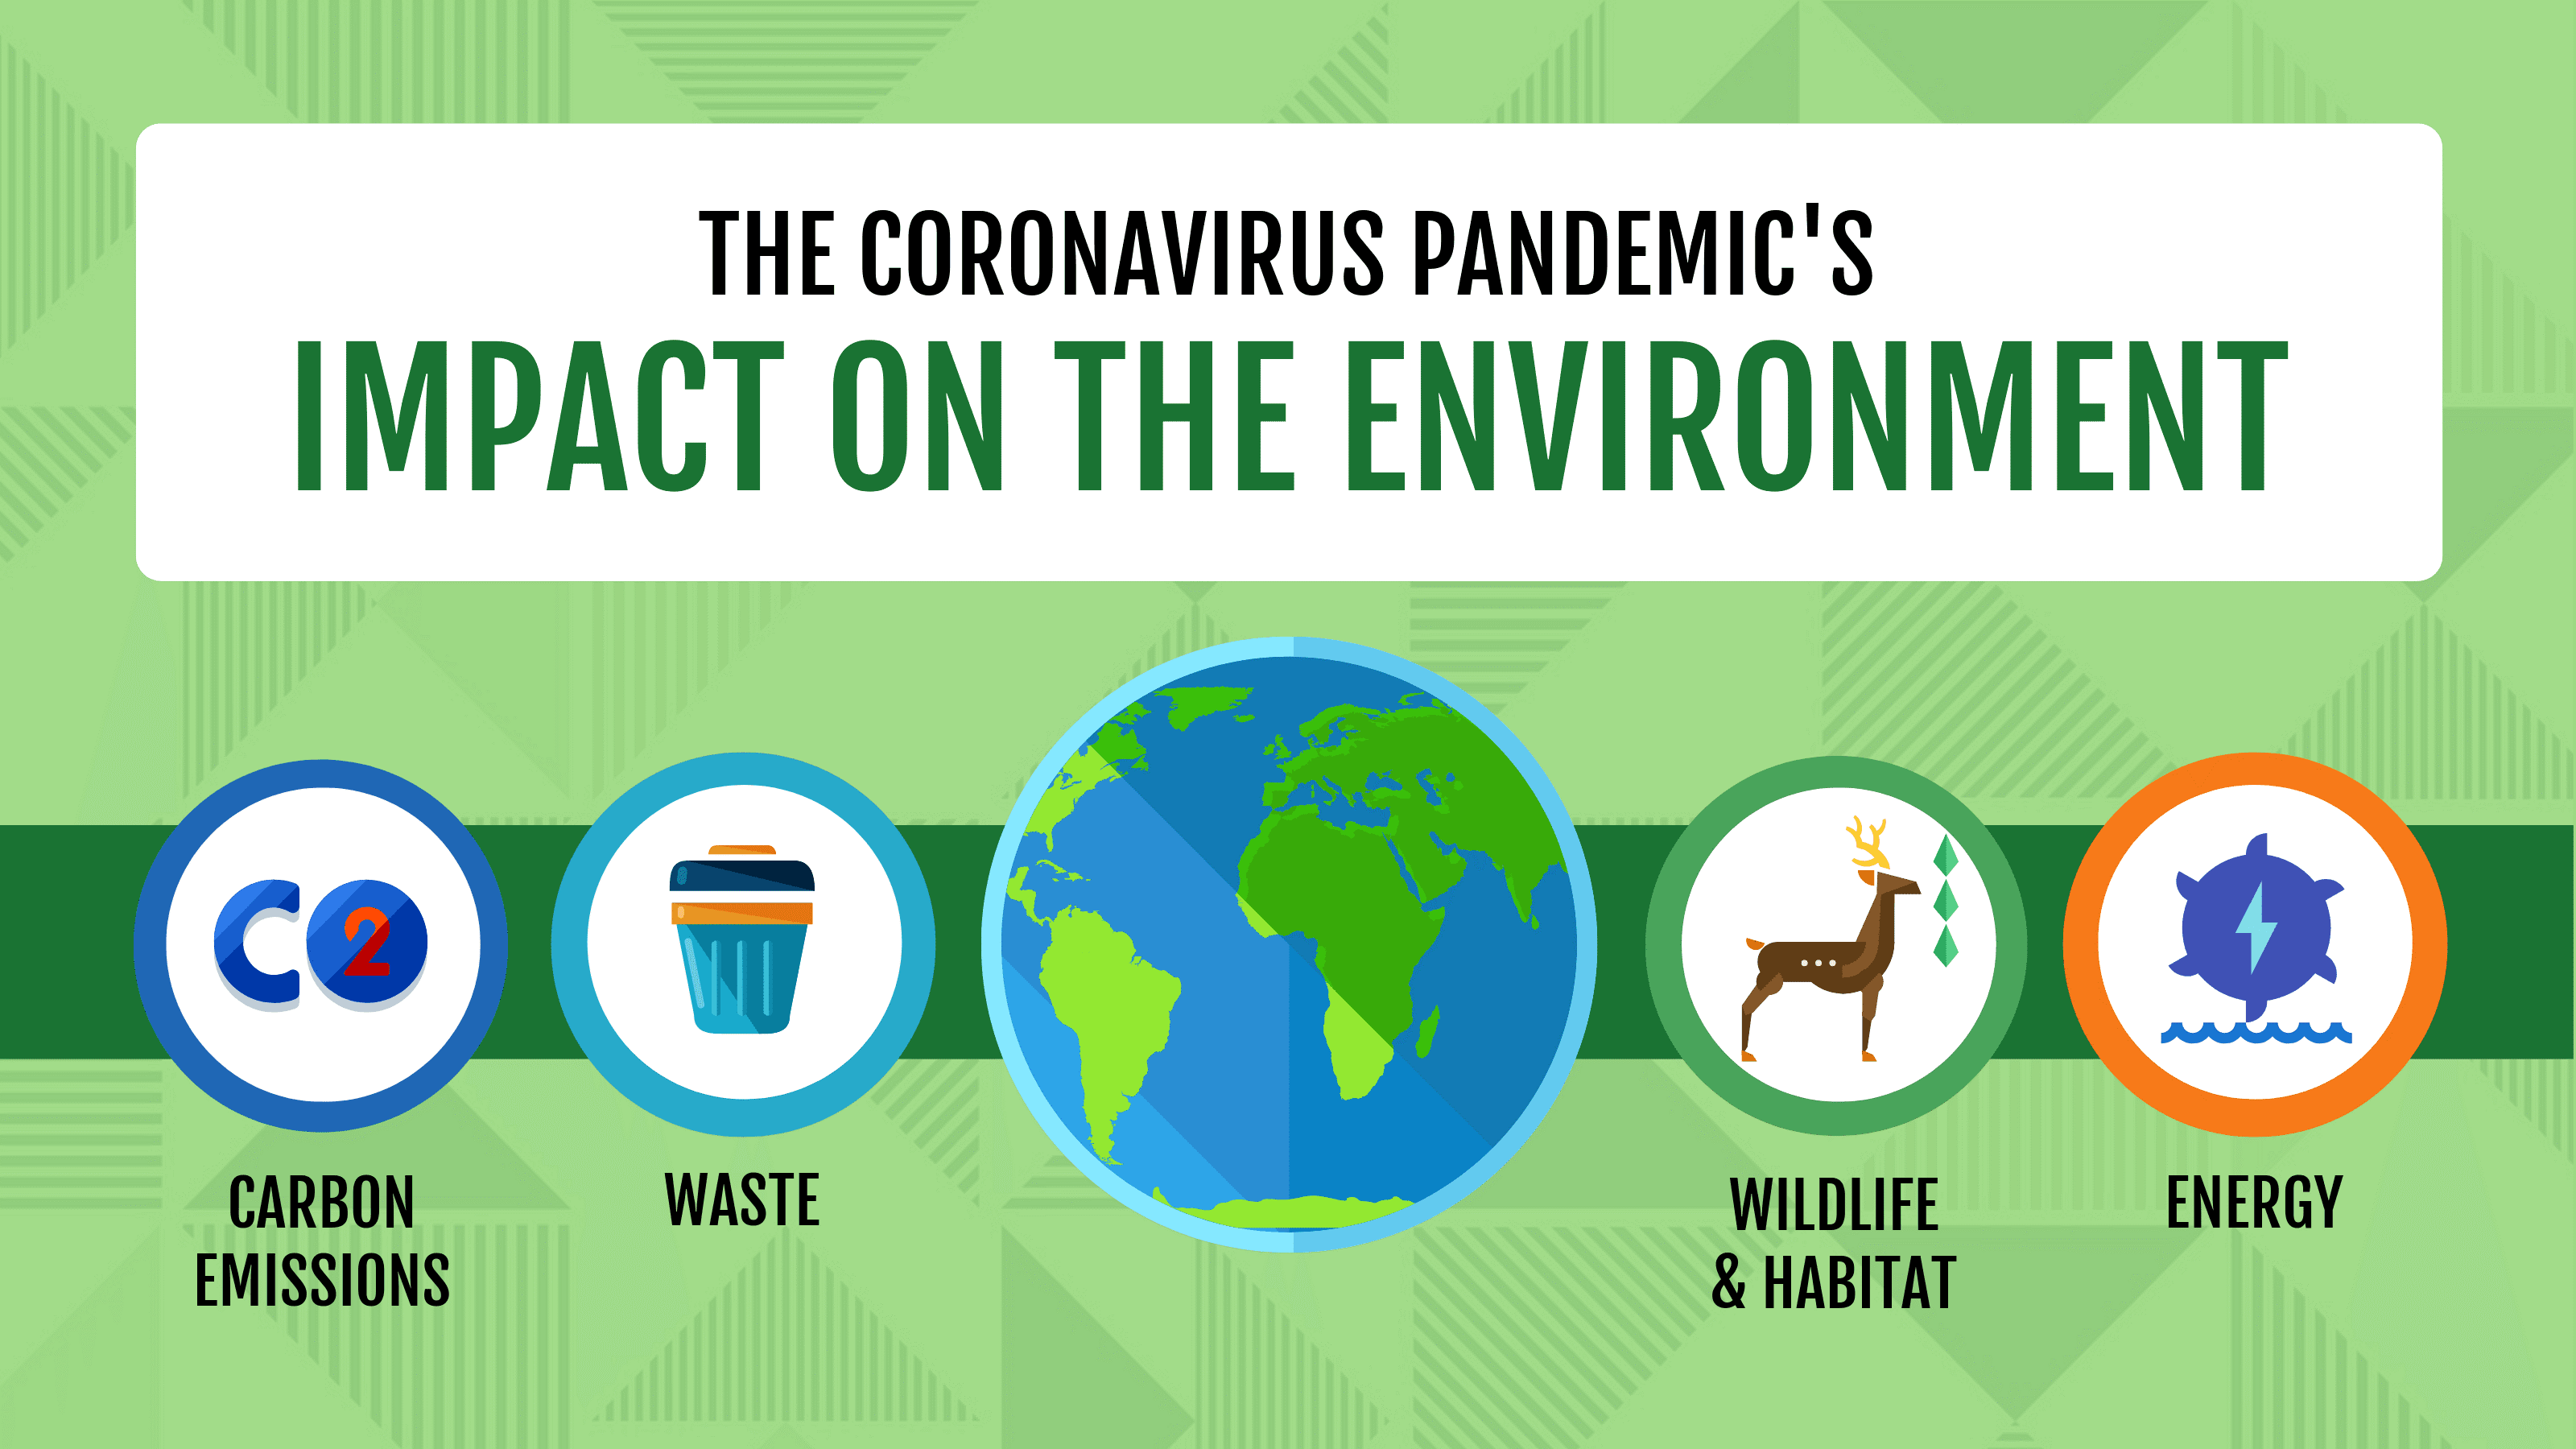 Coronavirus Pandemic's Impact on the Environment Image